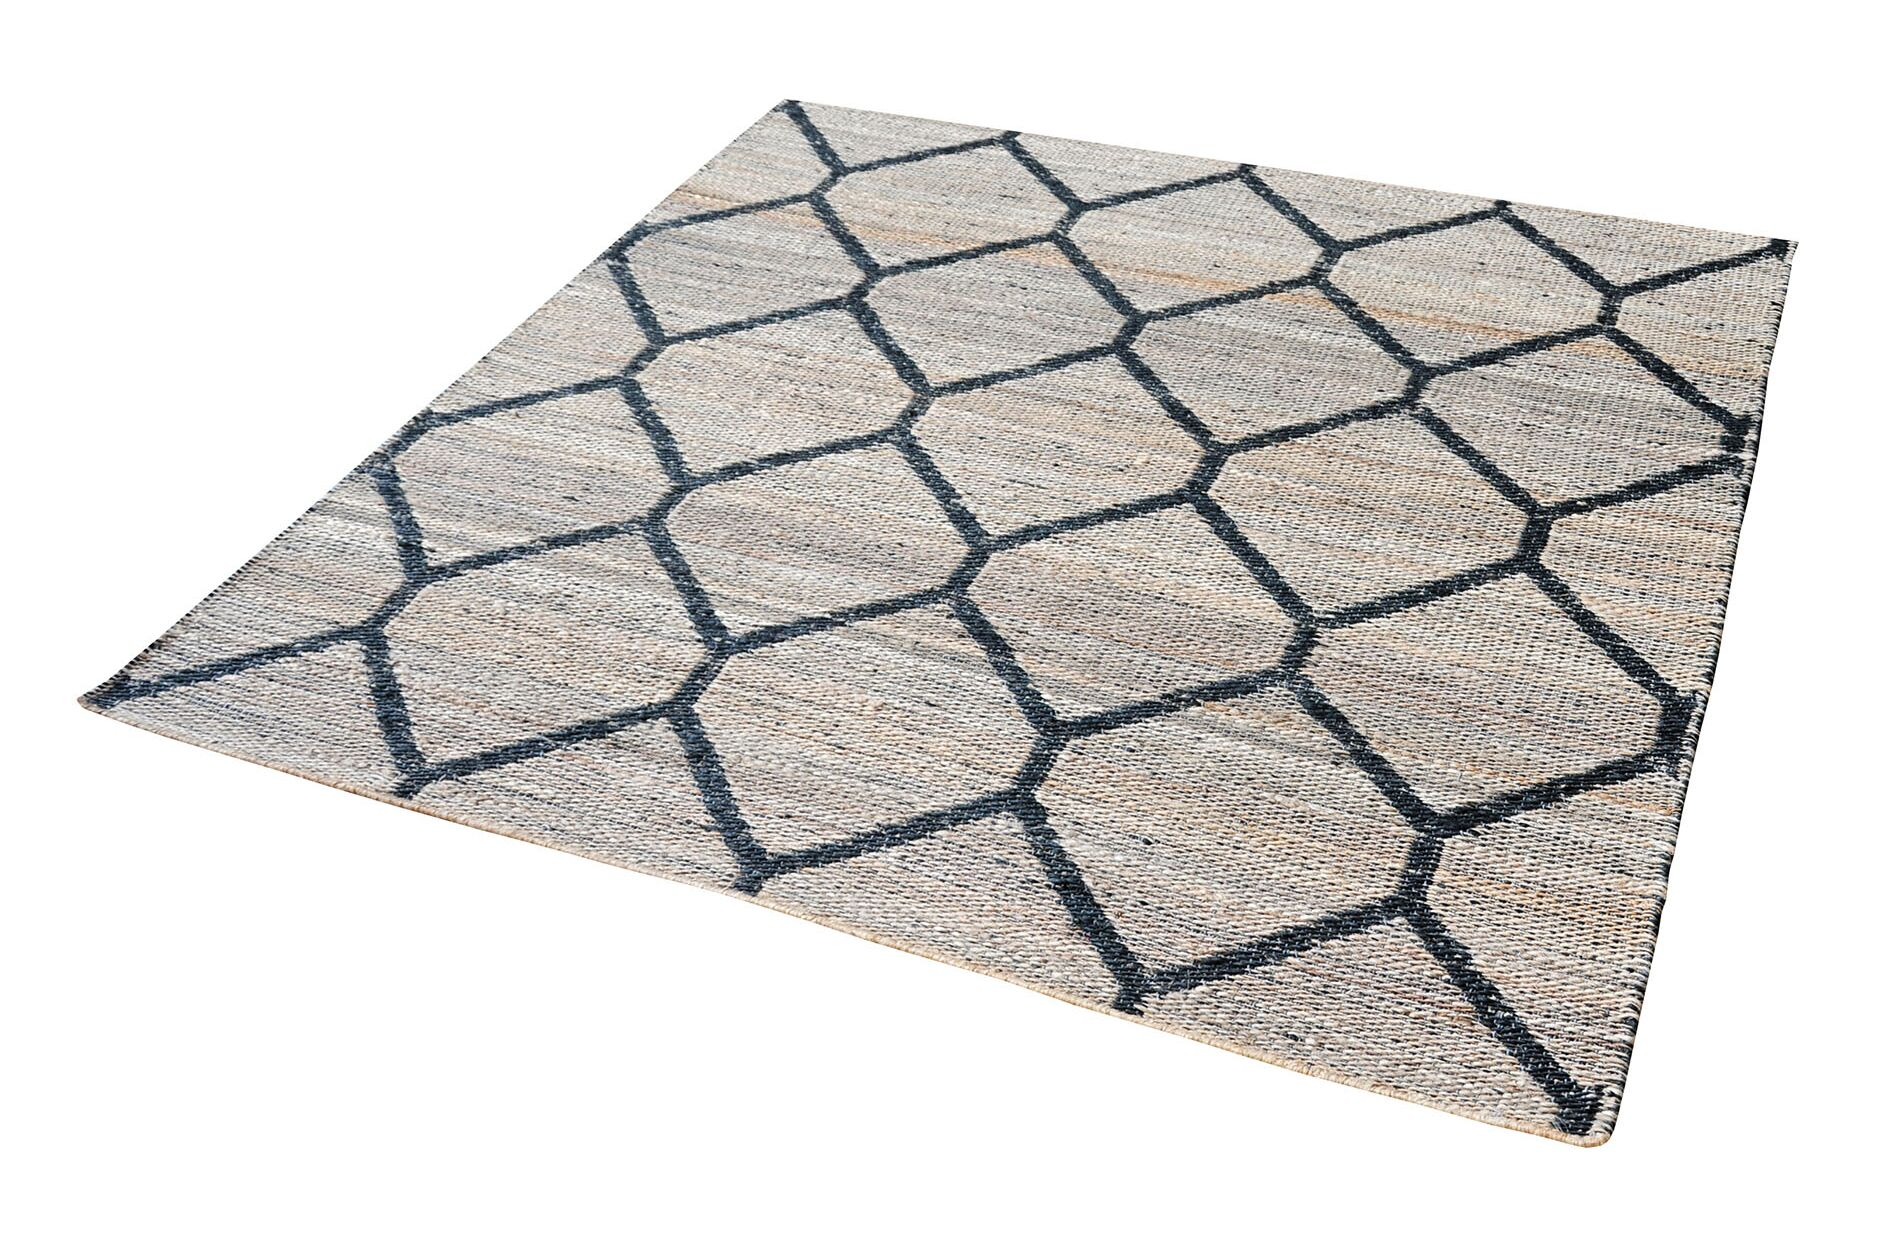 Royersford Hand-Loomed Natural/Black Area Rug Rug Size: Rectangle 3' x 5'